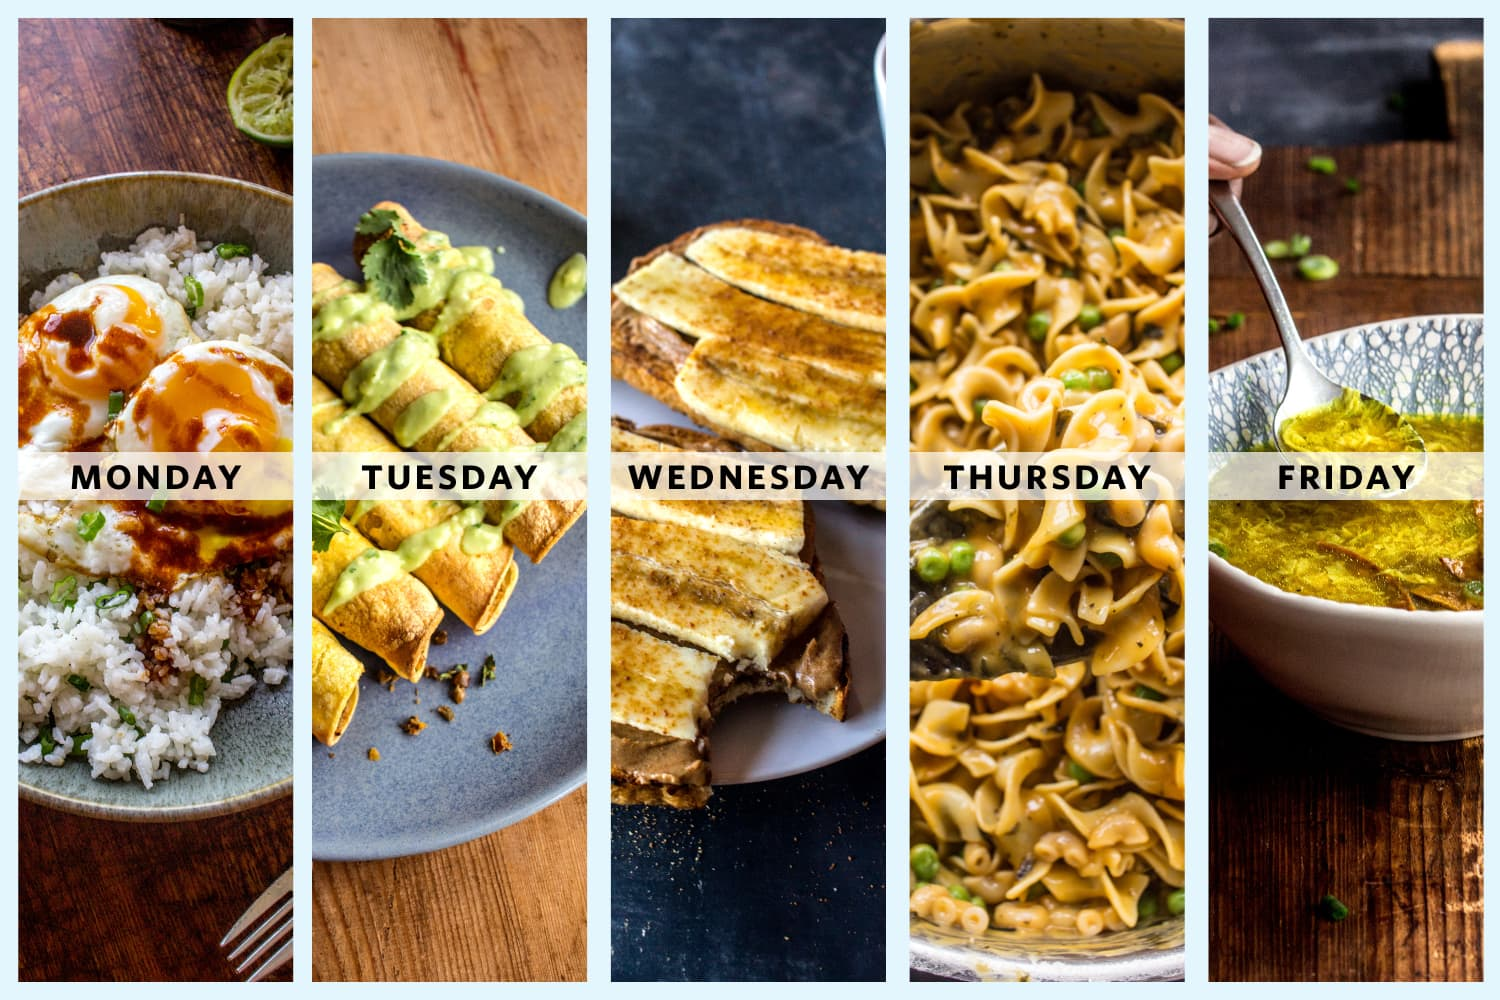 A Week of Budget-Friendly Vegetarian Dinners from Jerrelle Guy